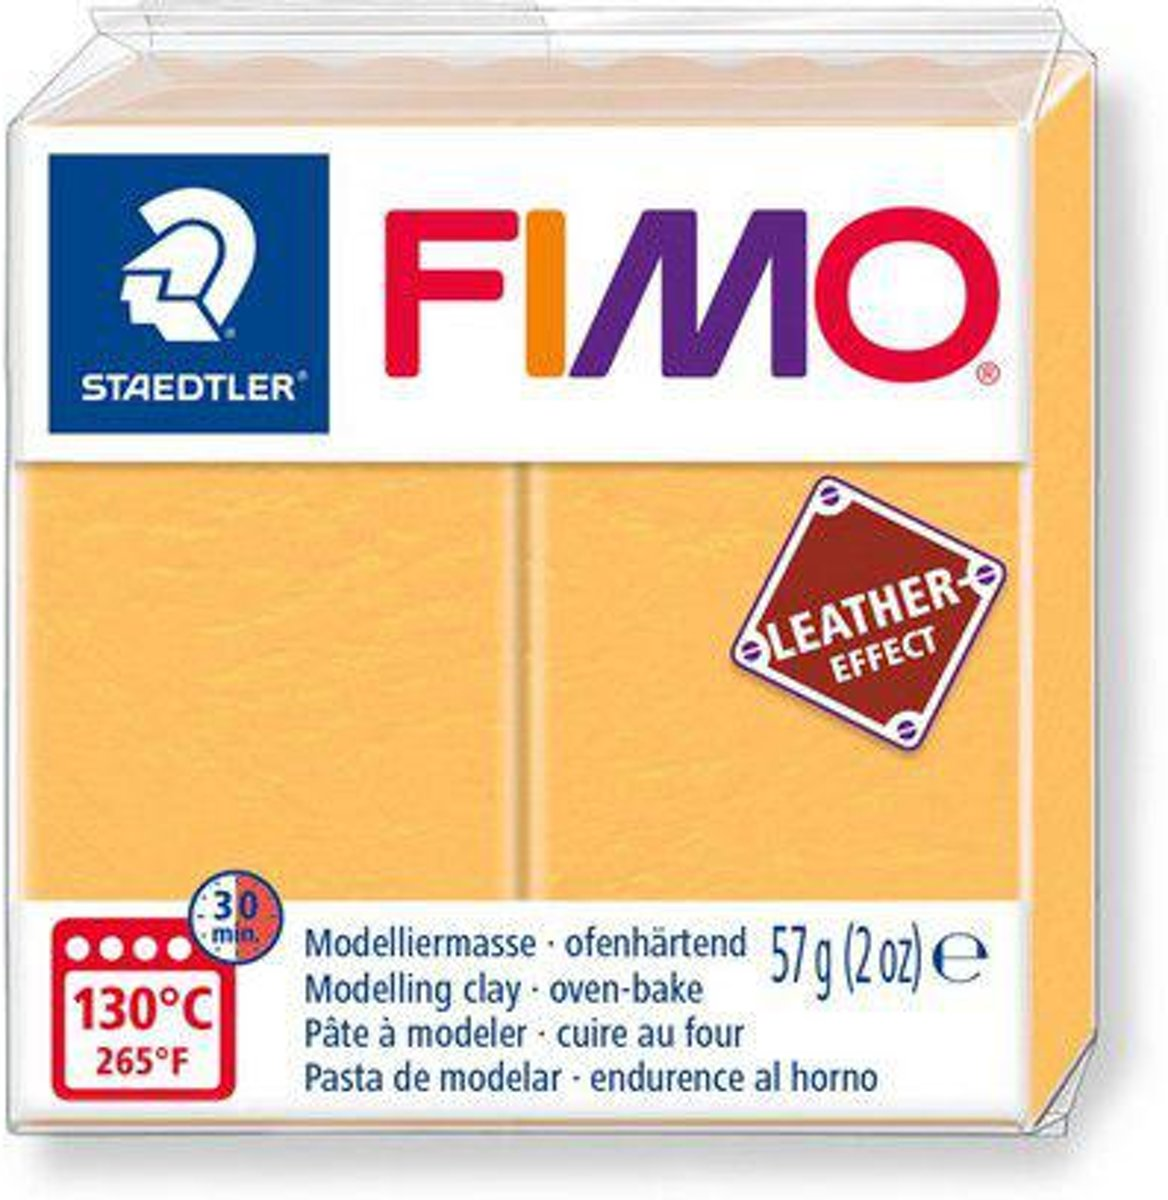 Fimo Effect leather 57 g saffraan geel 8010-109